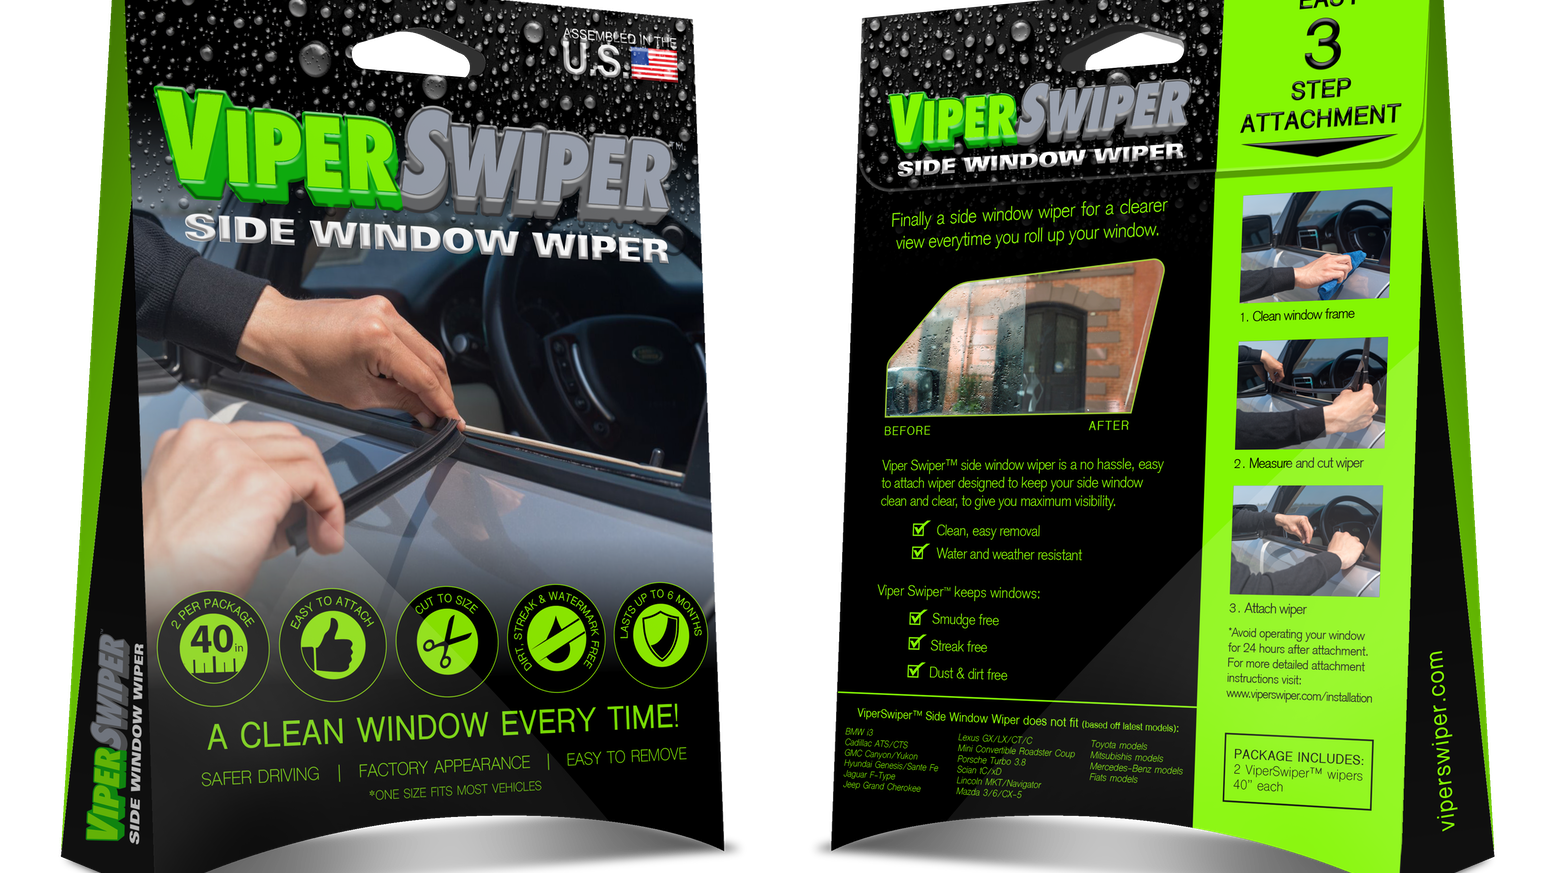 Viperswiper™ is a no hassle, easy to attach wiper, designed to keep your side window view clear every time you roll up your window.